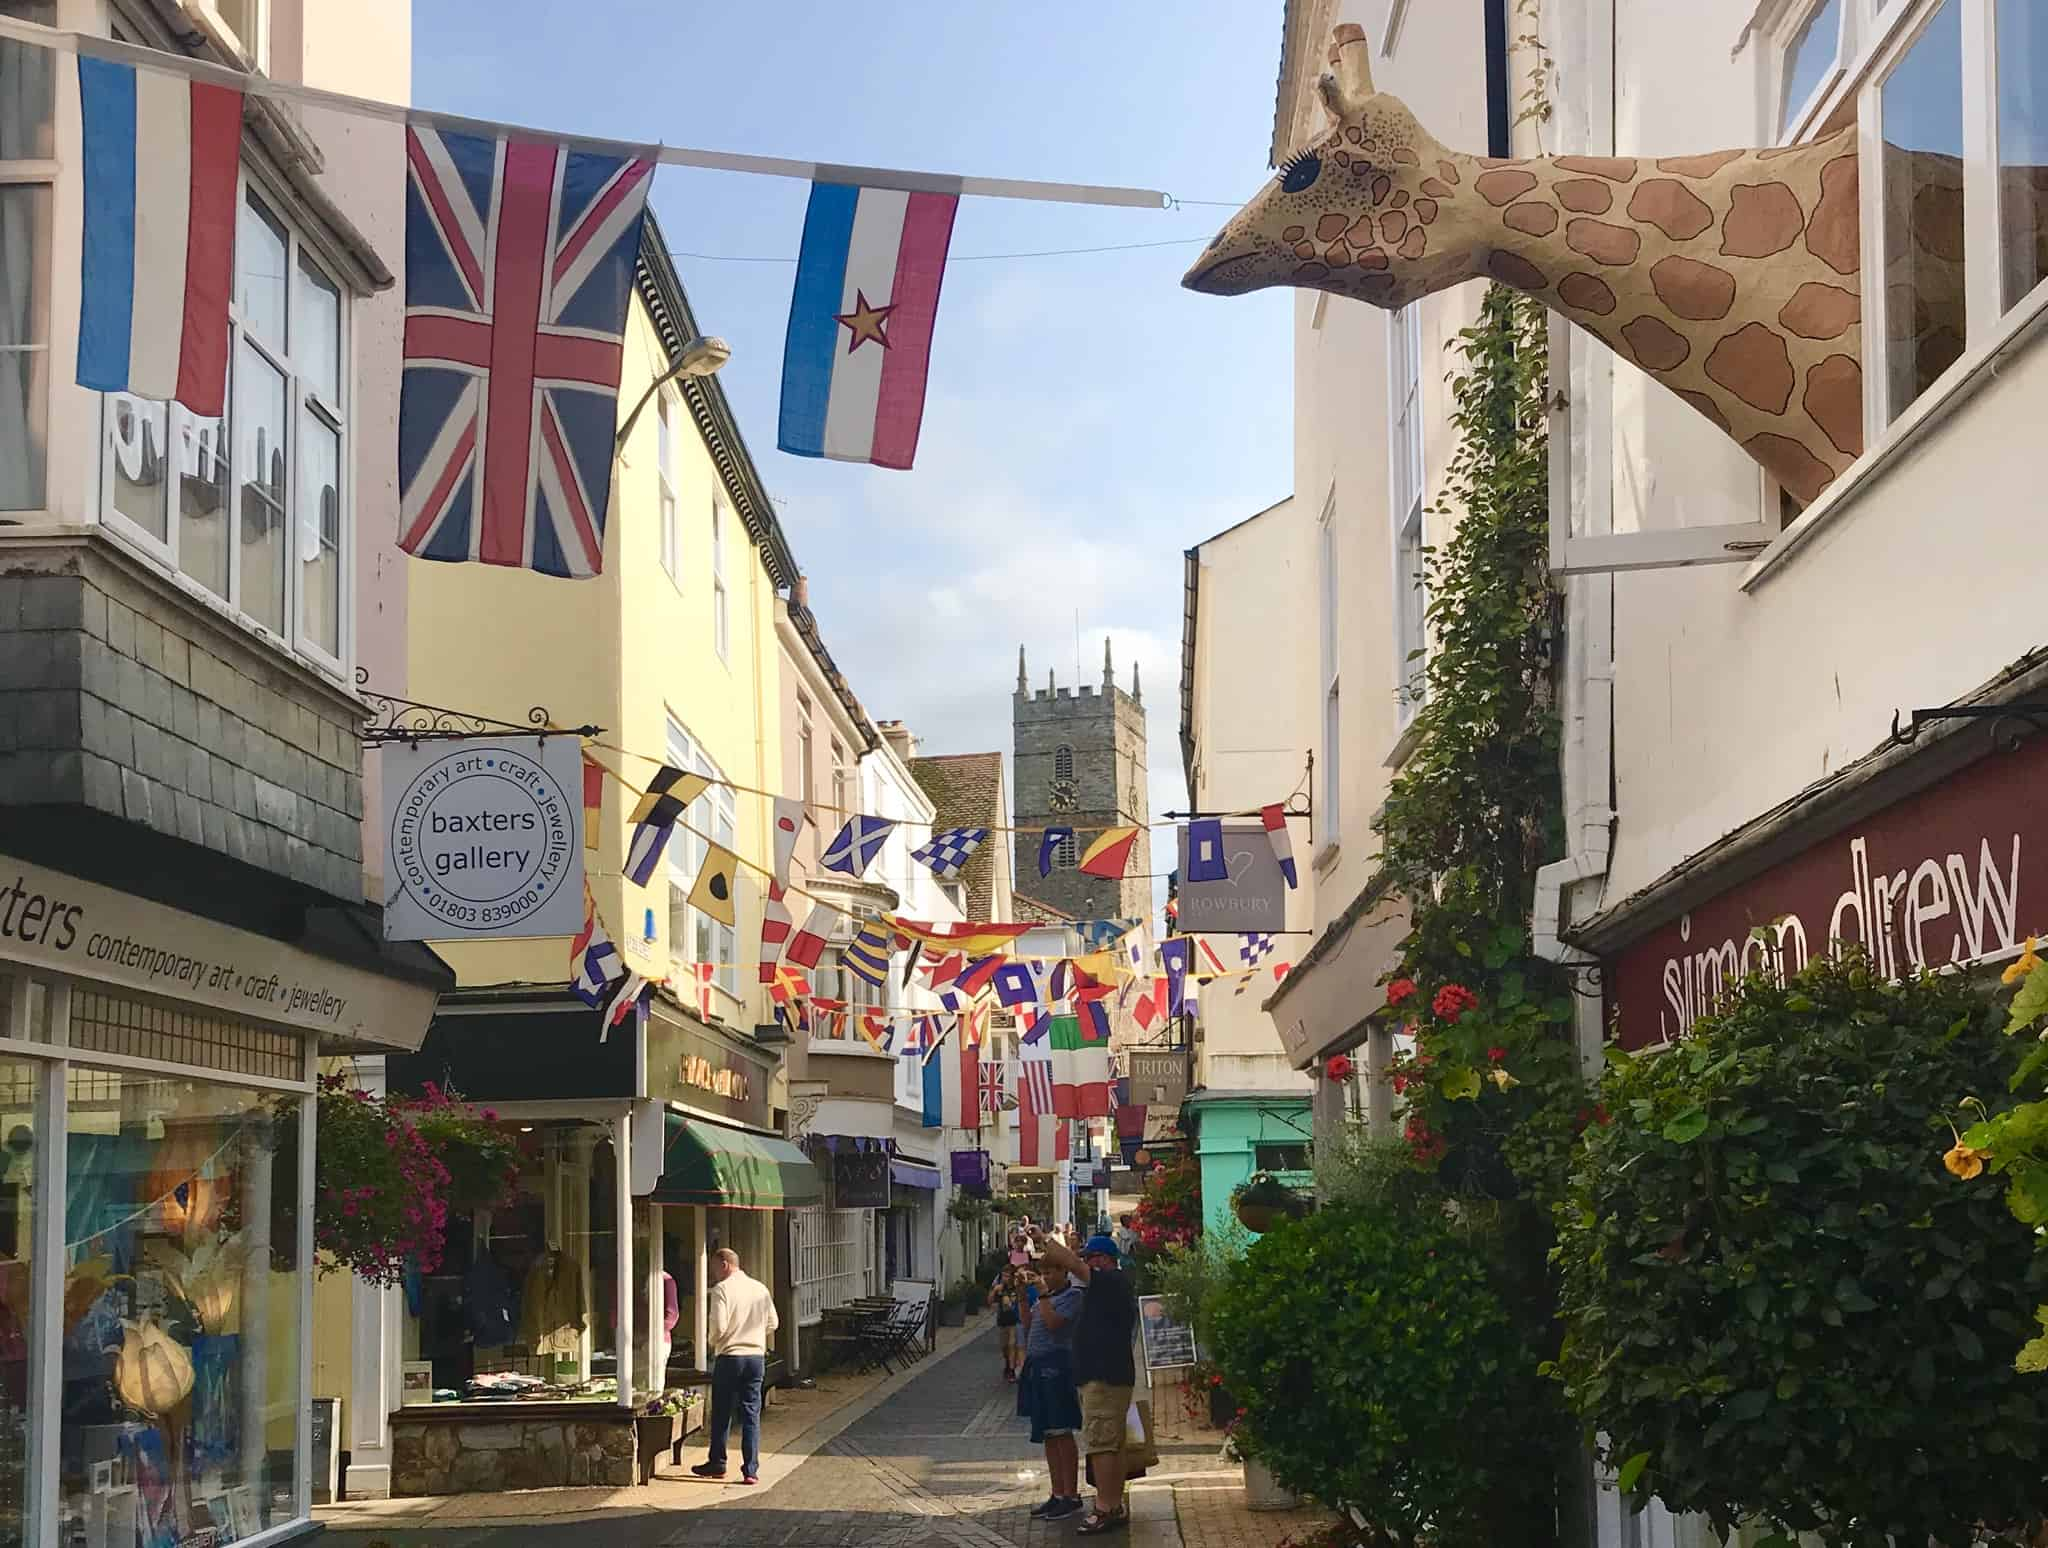 The Best Things To Do in Dartmouth, Devon: Make The Most of Your Stay